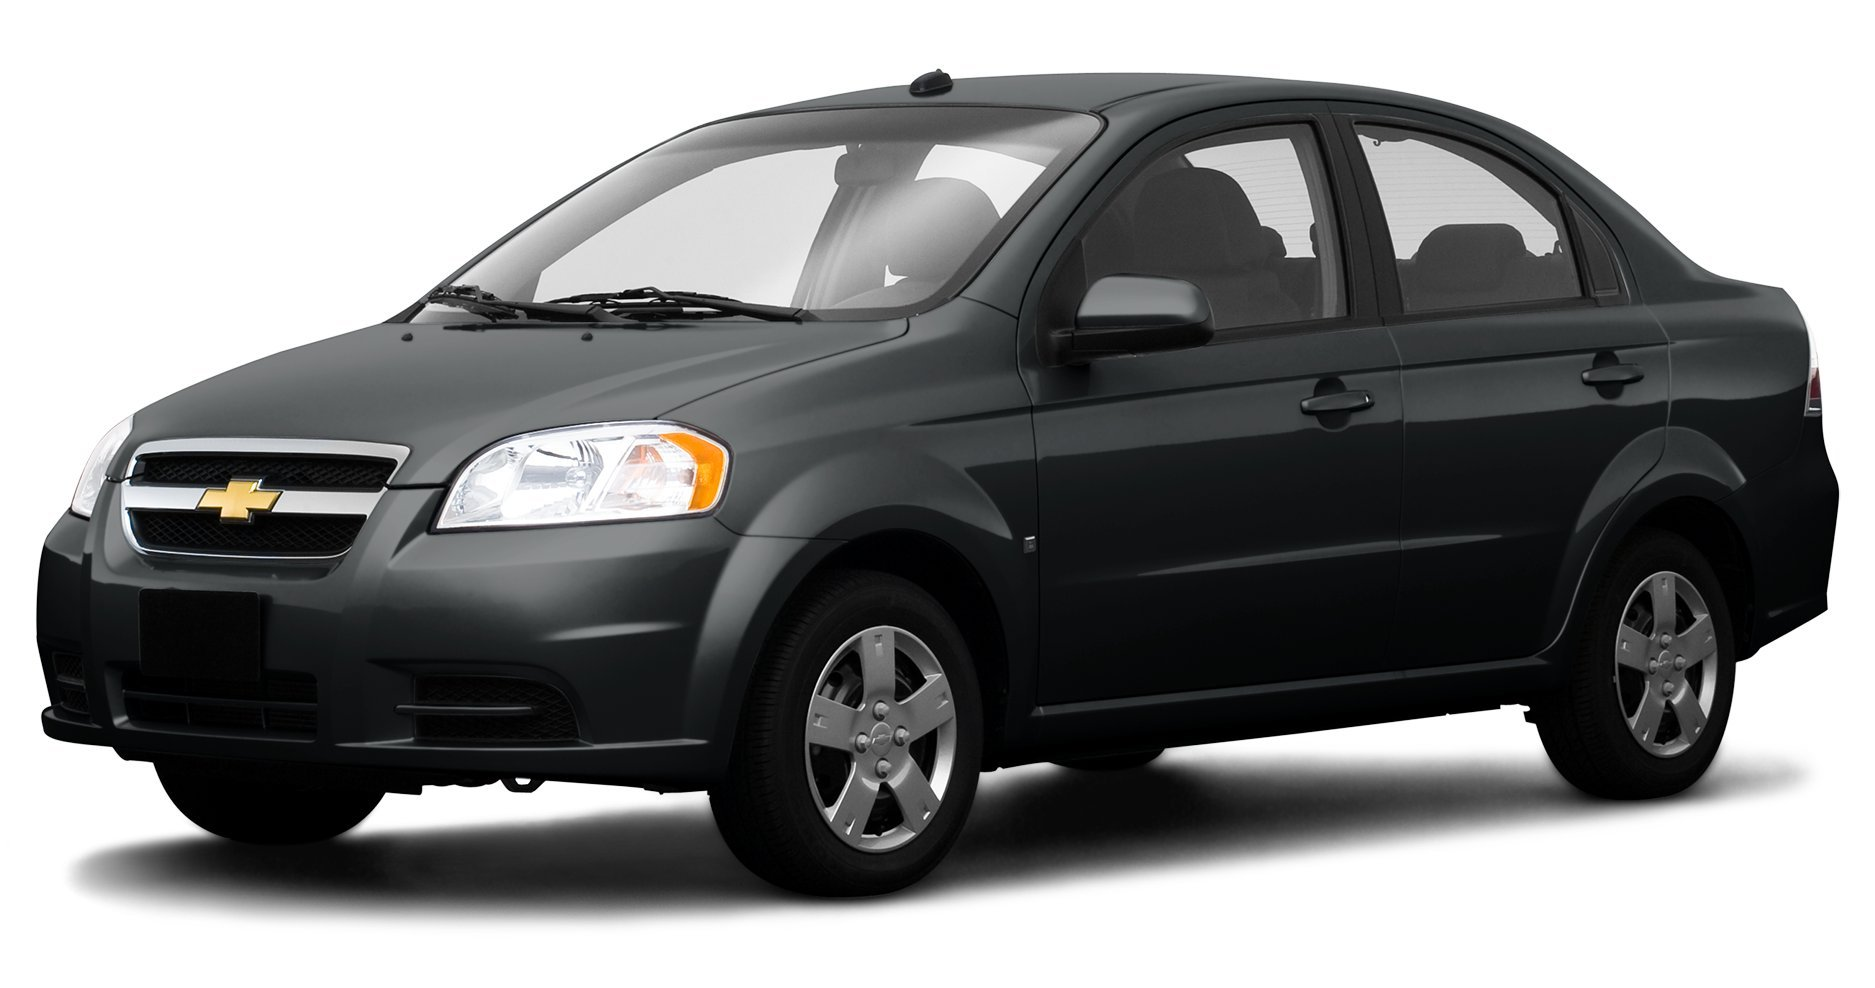 2009 chevrolet aveo reviews images and specs vehicles. Black Bedroom Furniture Sets. Home Design Ideas